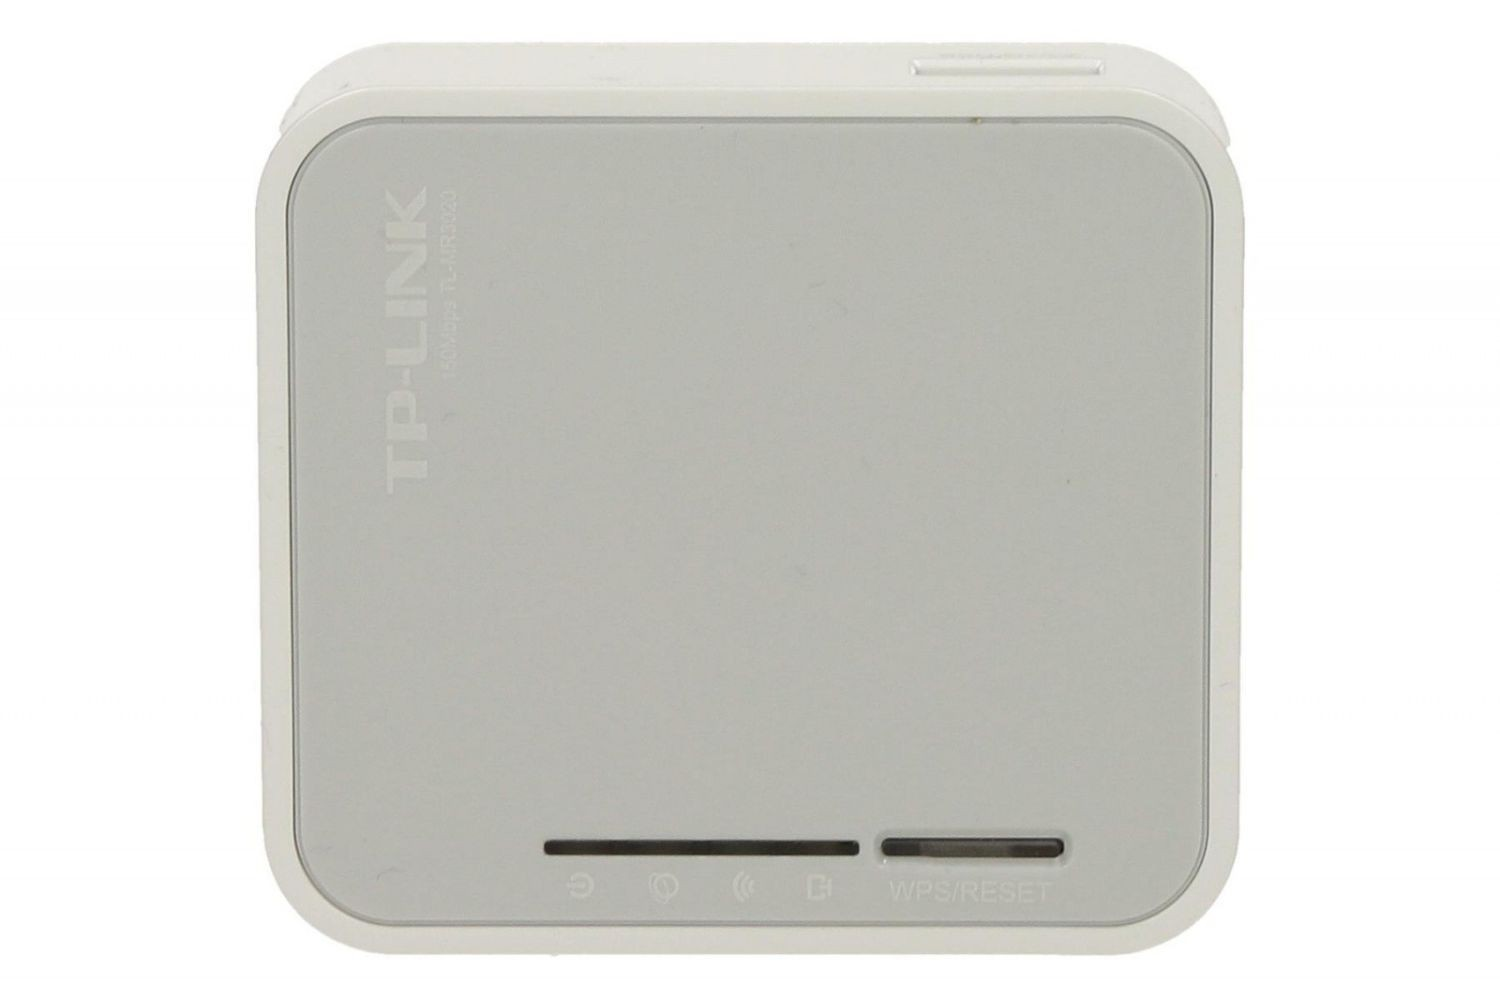 TP-Link TL-MR3020 Wireless N150 3G/3.75 UMTS/HSPA/EVDO router 1xLAN/WAN,1xUSB